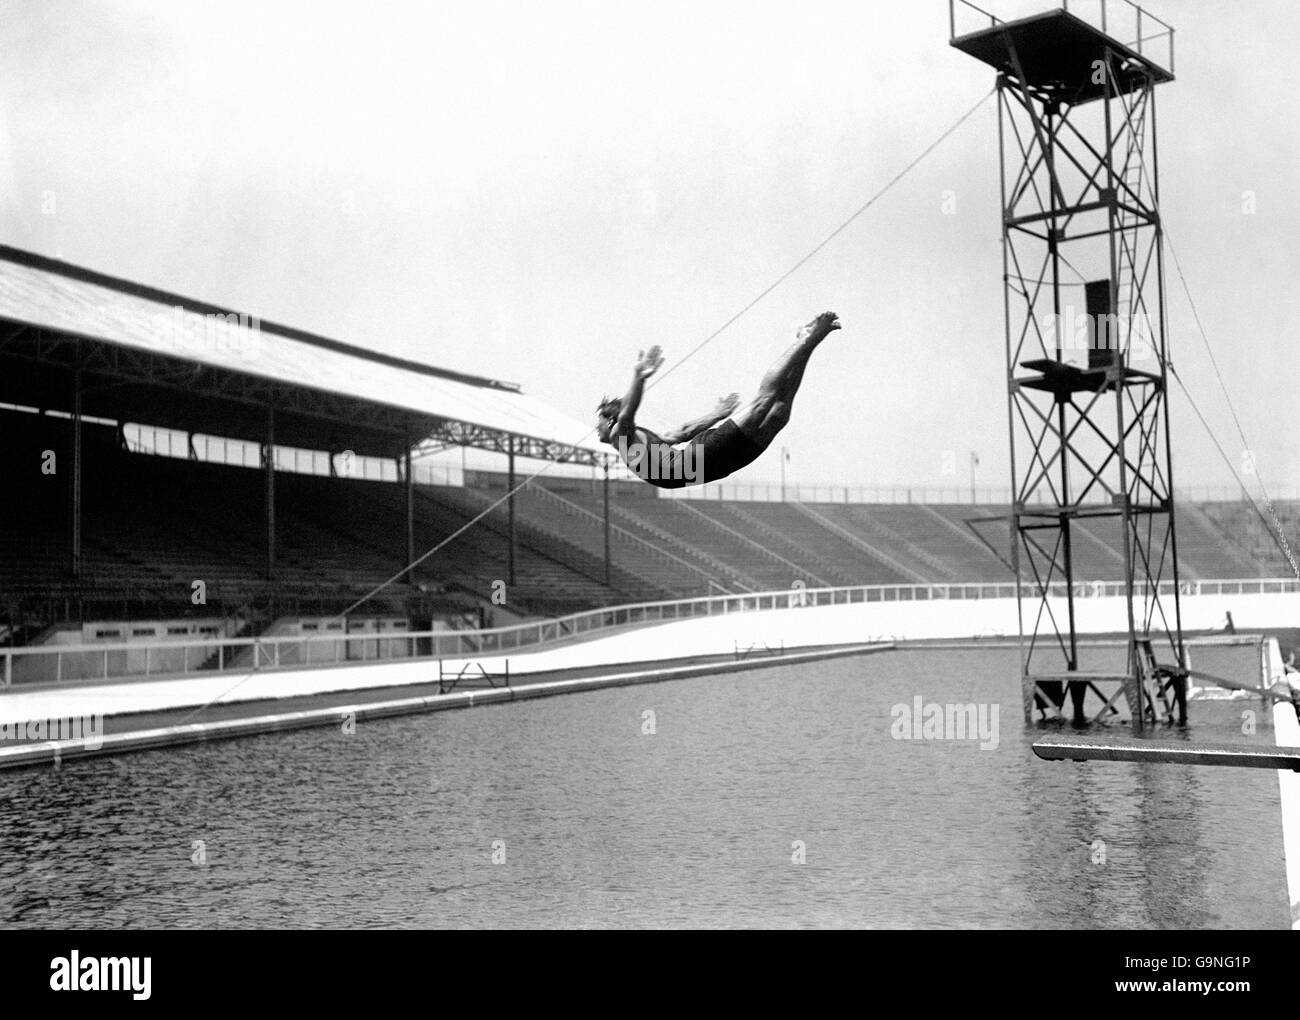 Diving - London Olympic Games 1908 - Springboard - White City Stock Photo